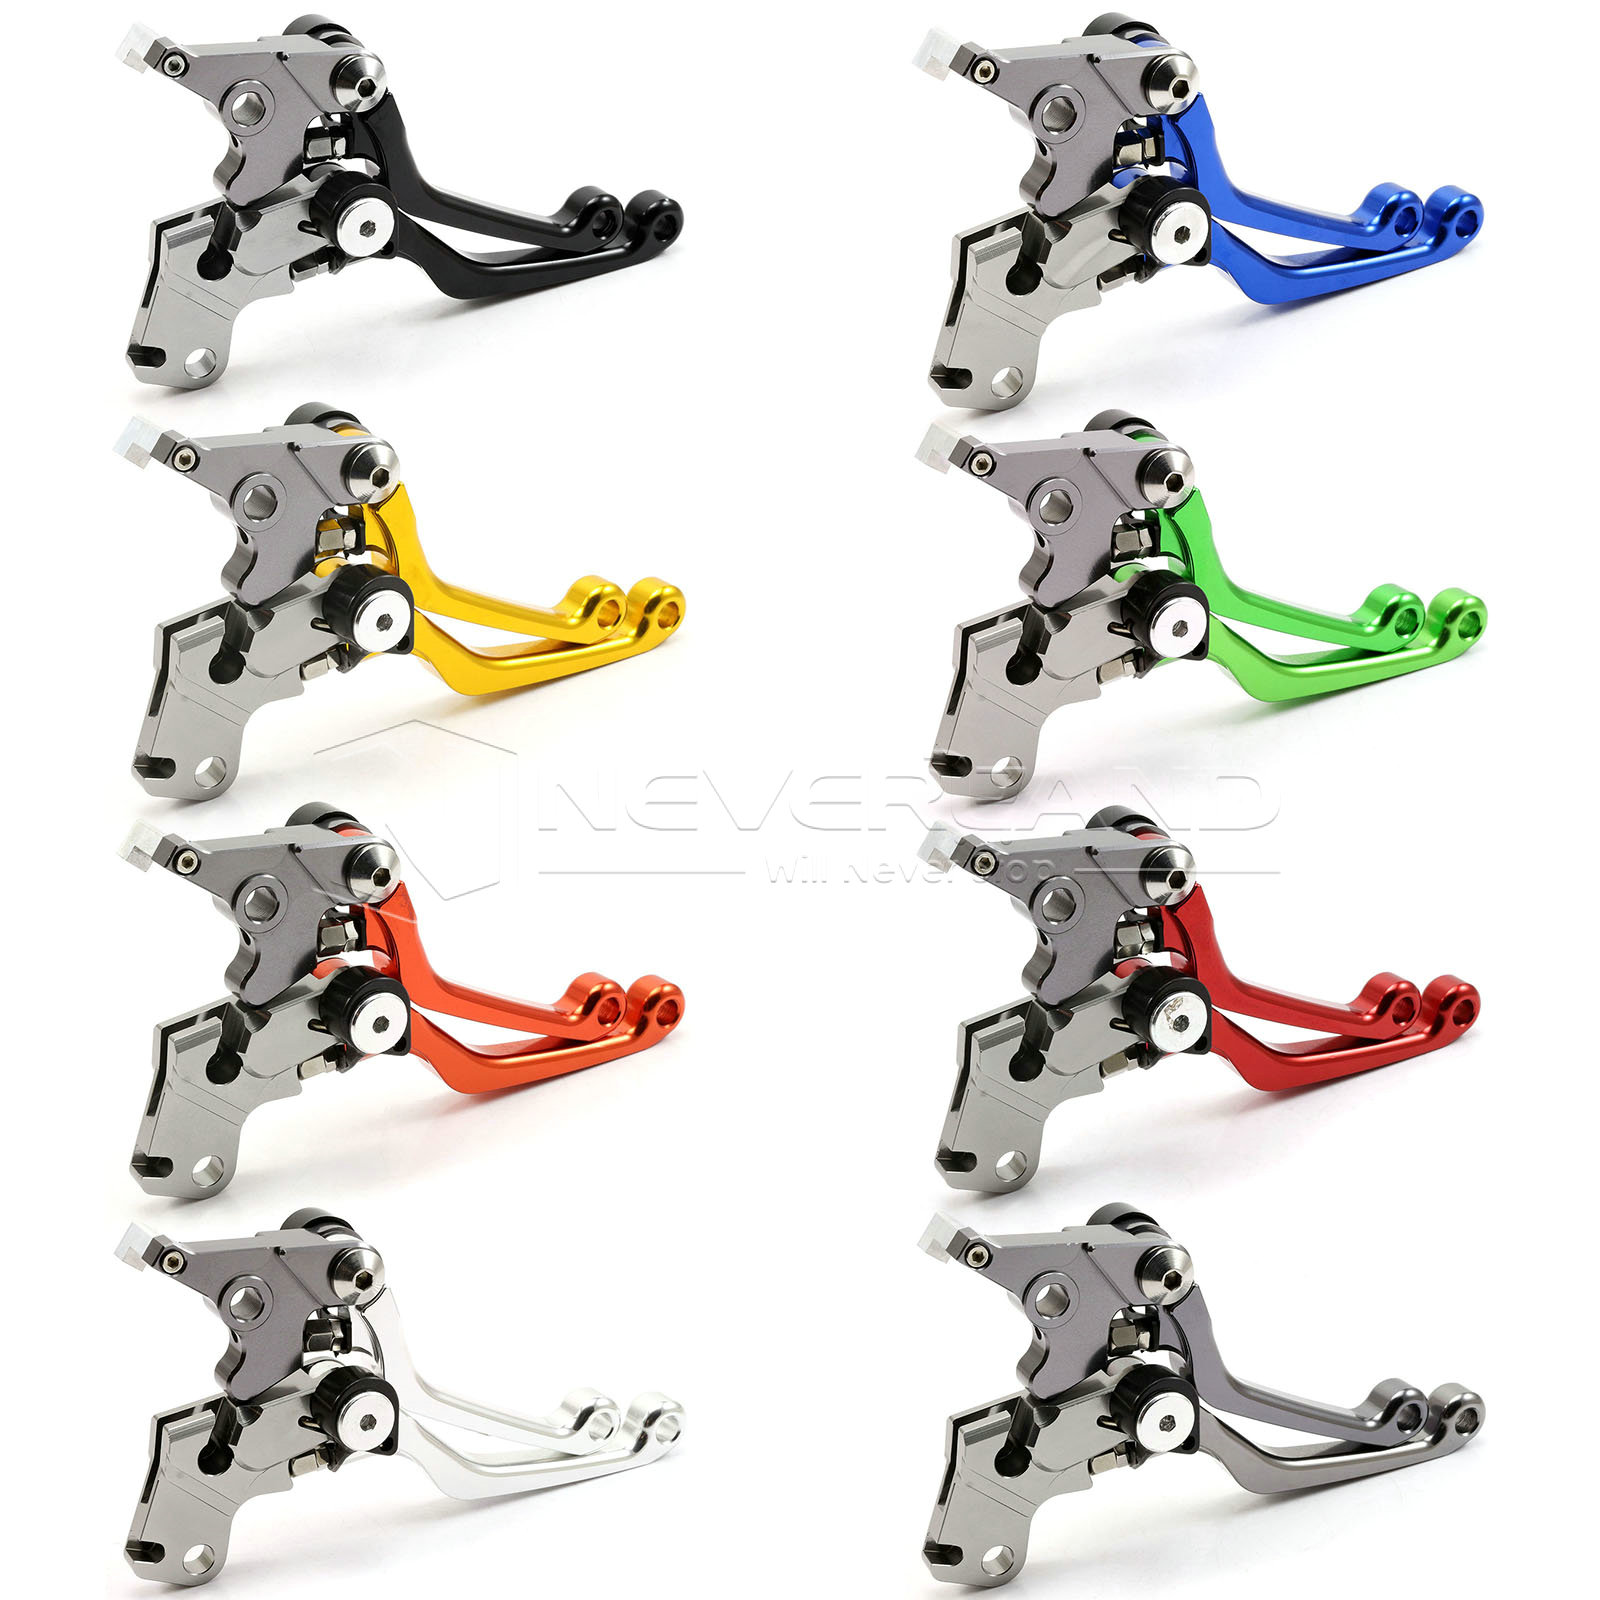 Motorcycle Accessories One Pair Top Quality CNC Pivot Brake Clutch Levers For Suzuki 250SB 2002 2003 2004 2005 2006 D10<br><br>Aliexpress